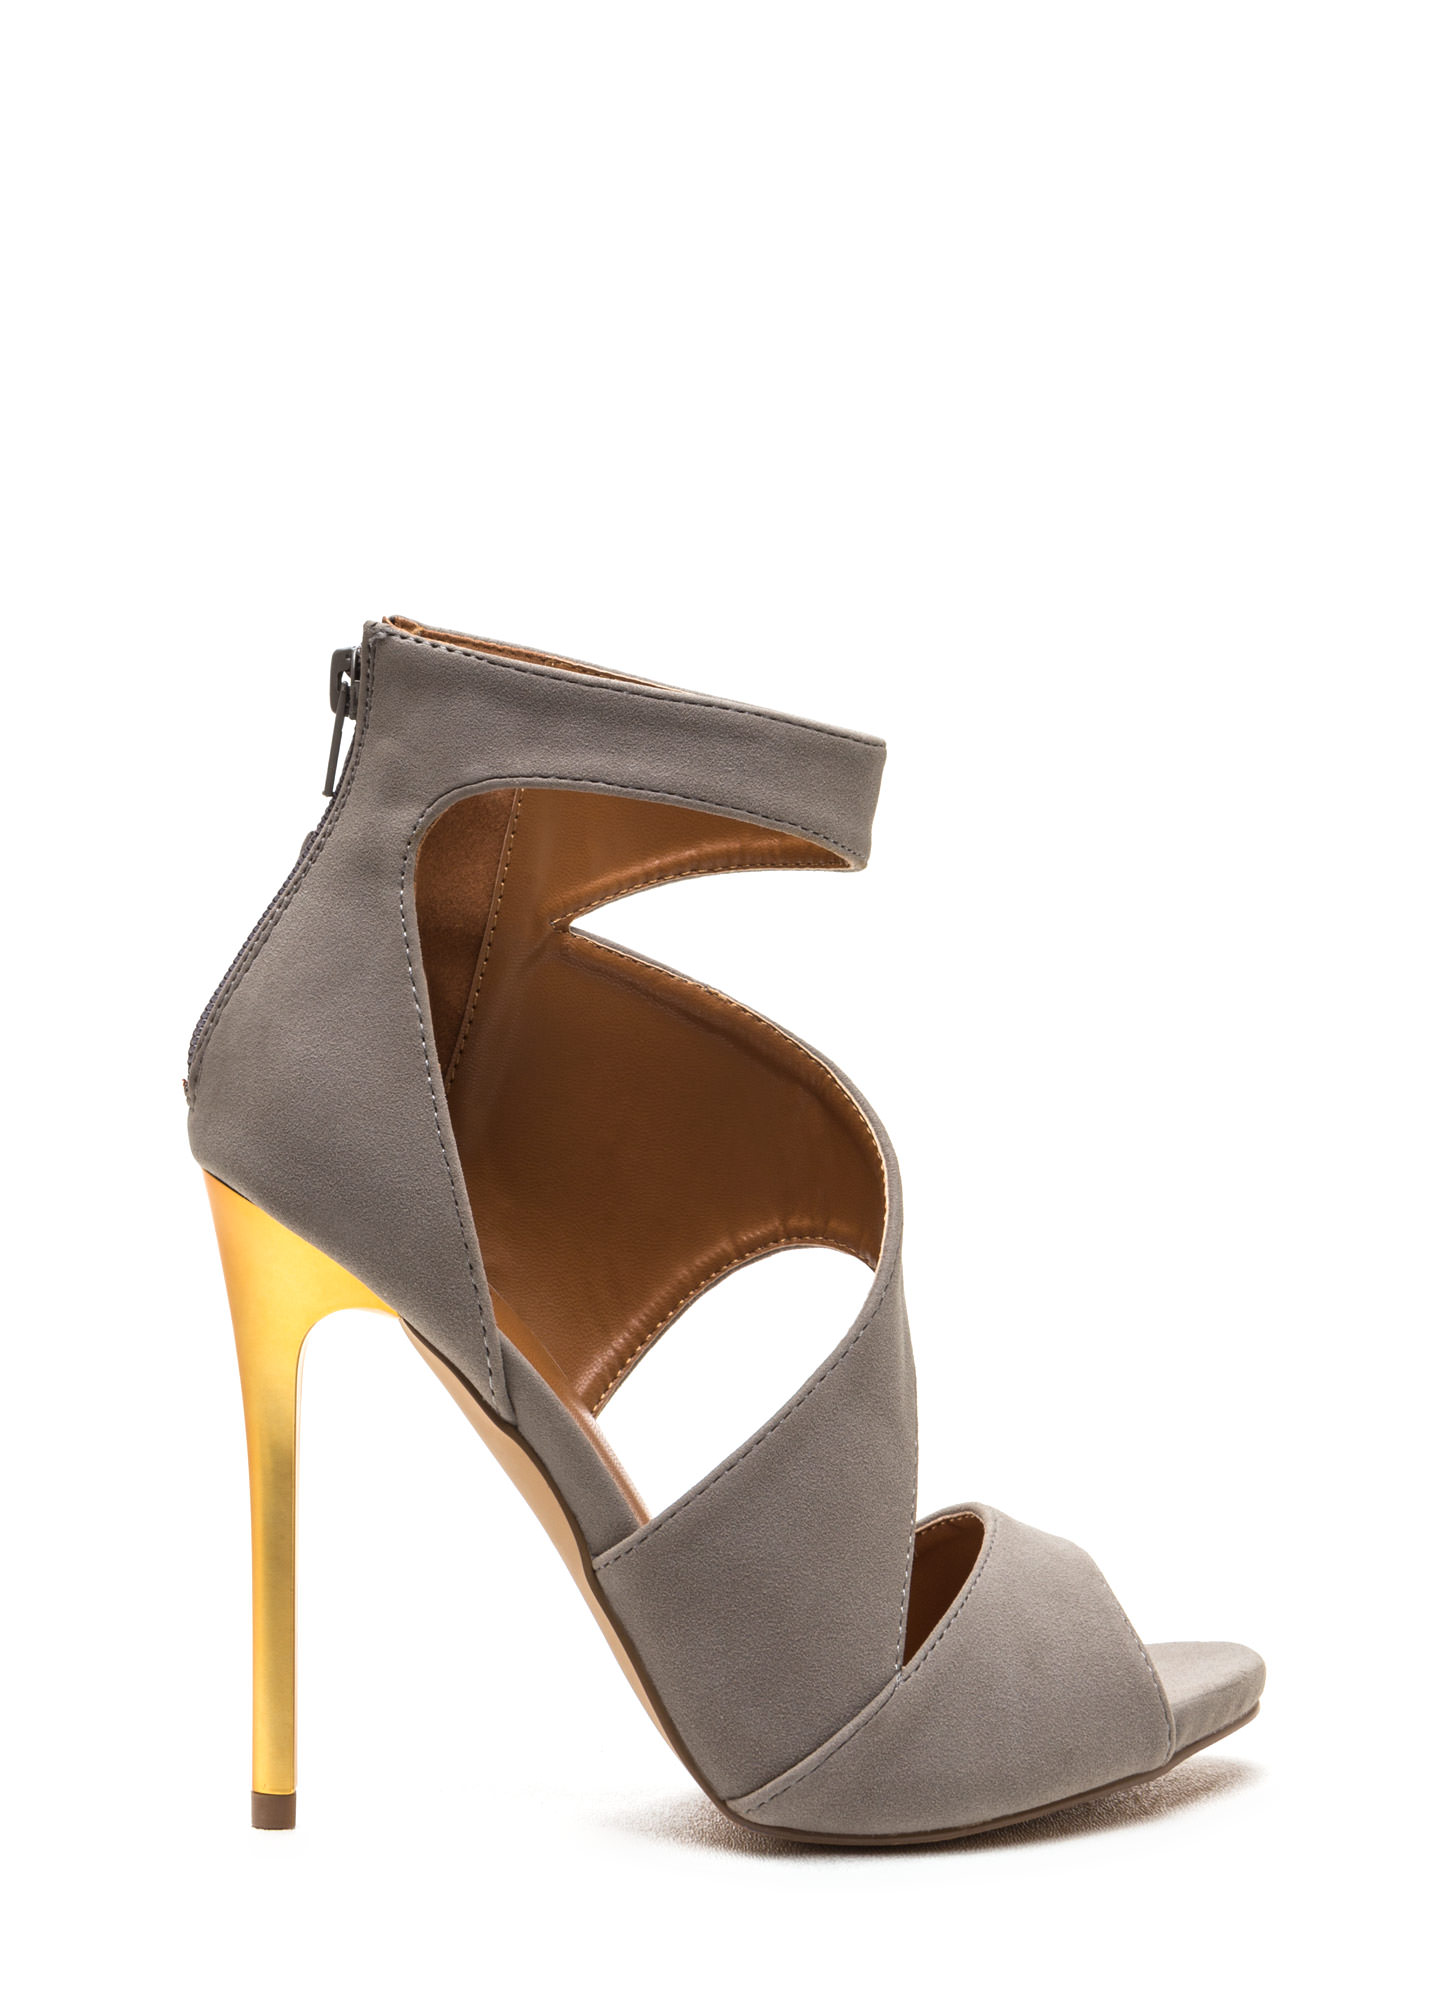 Sneak A Peek Cut-Out Faux Suede Heels GREY